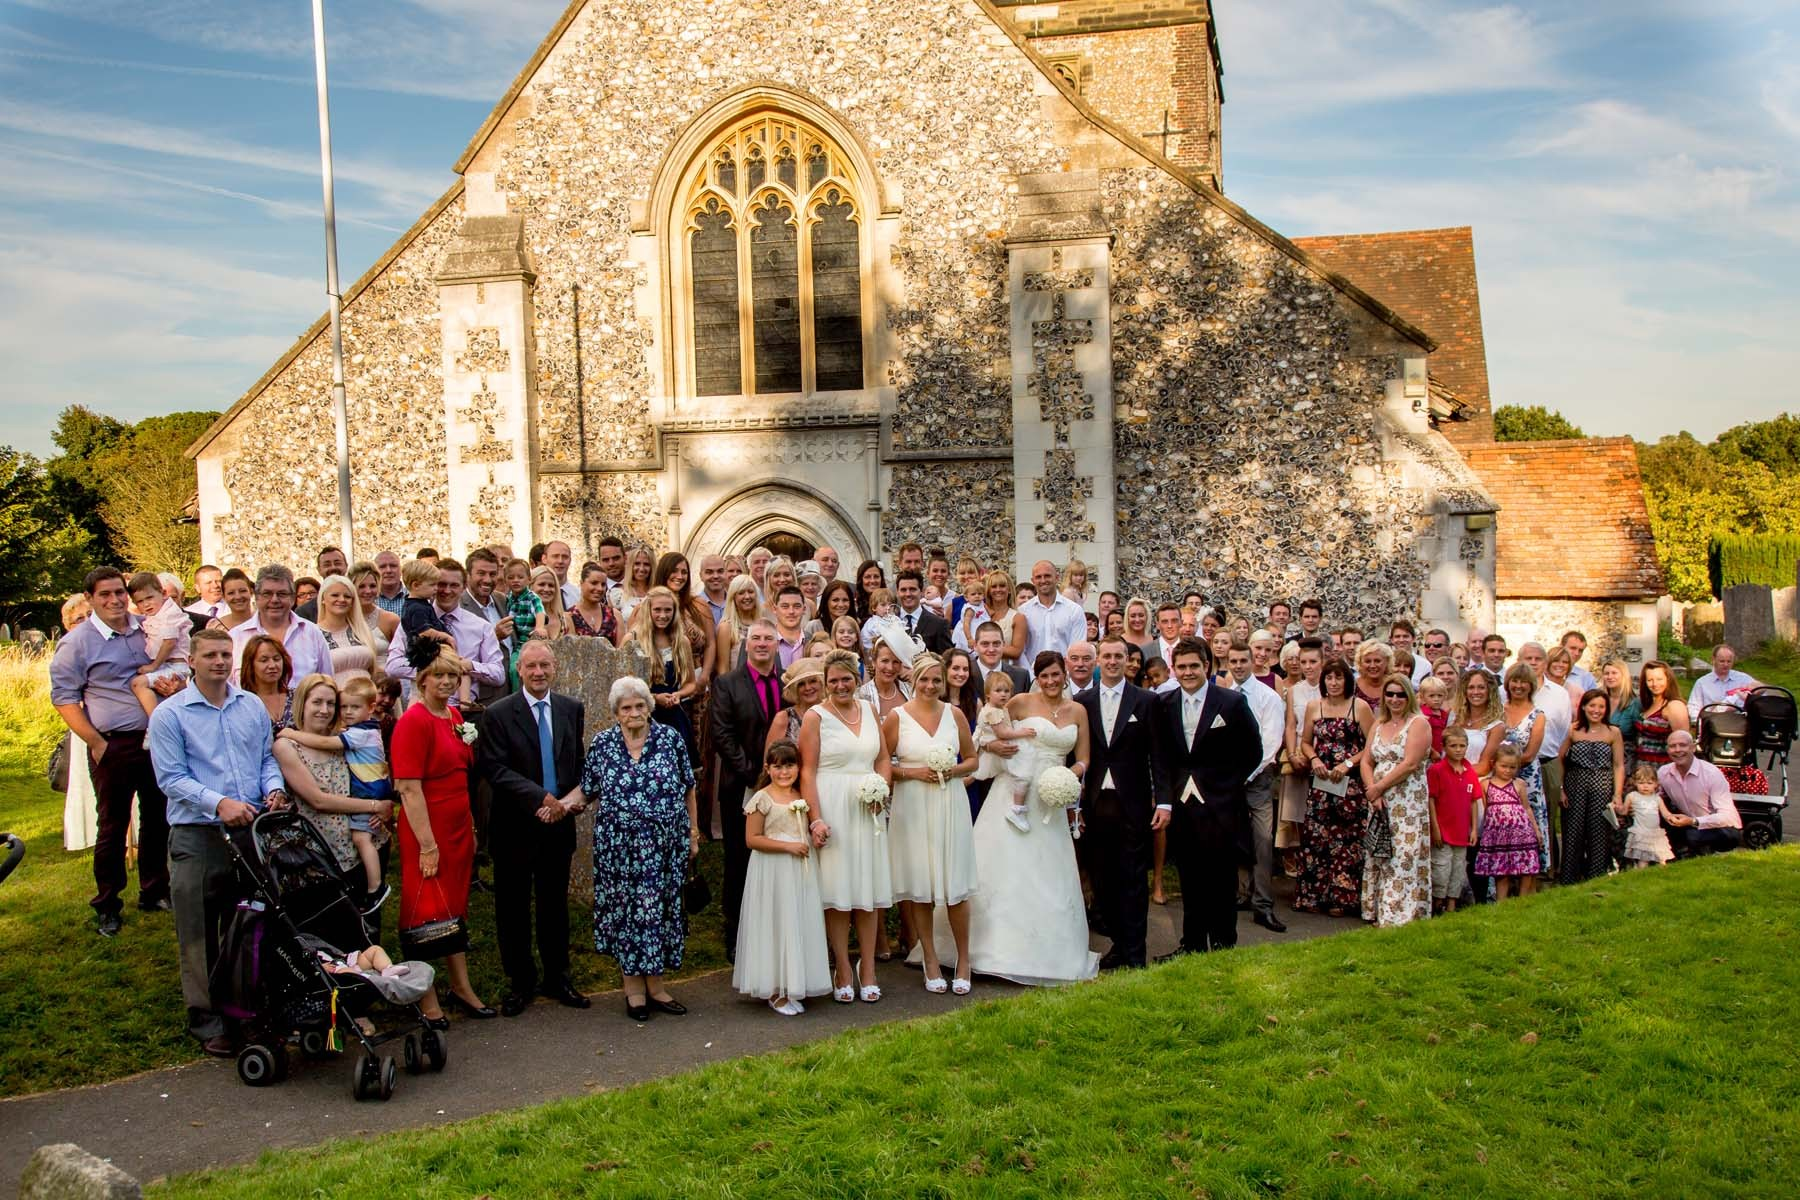 Sussex & Surrey Wedding Photographer - Guests & Groups (22)